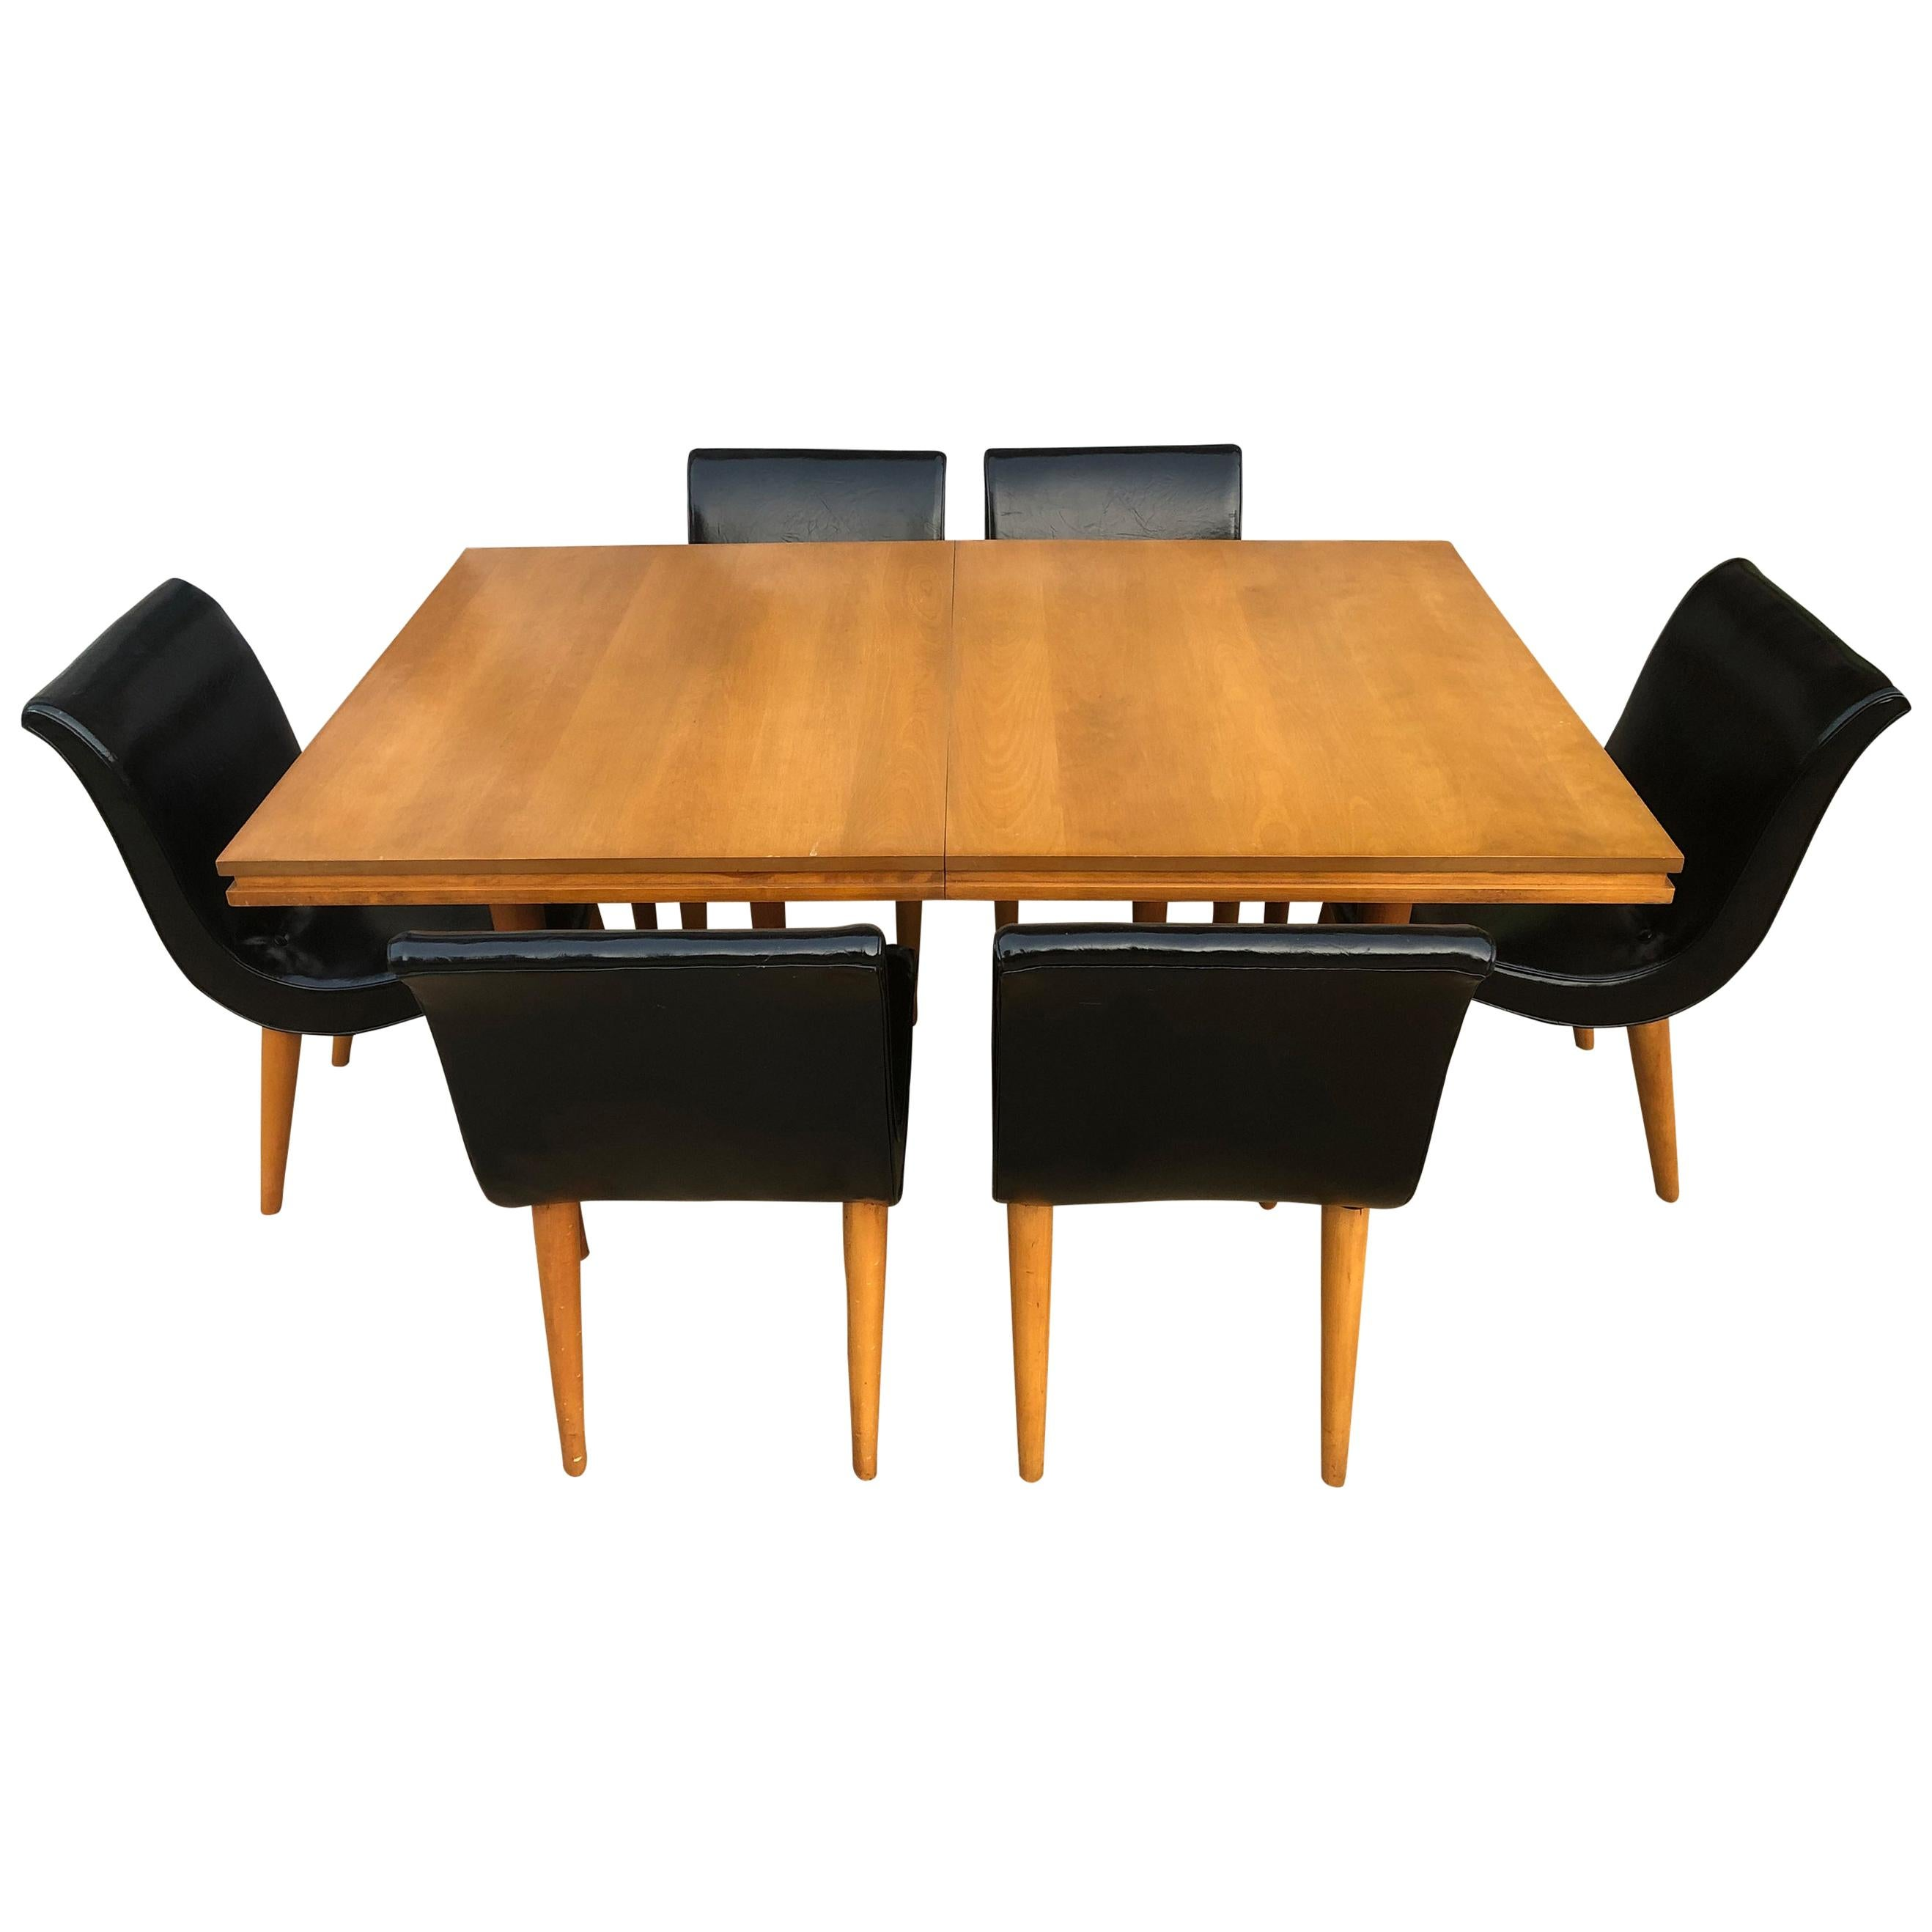 Unique Rare Russel Wright Maple Dining Table Set With 6 Black Scoop Chairs